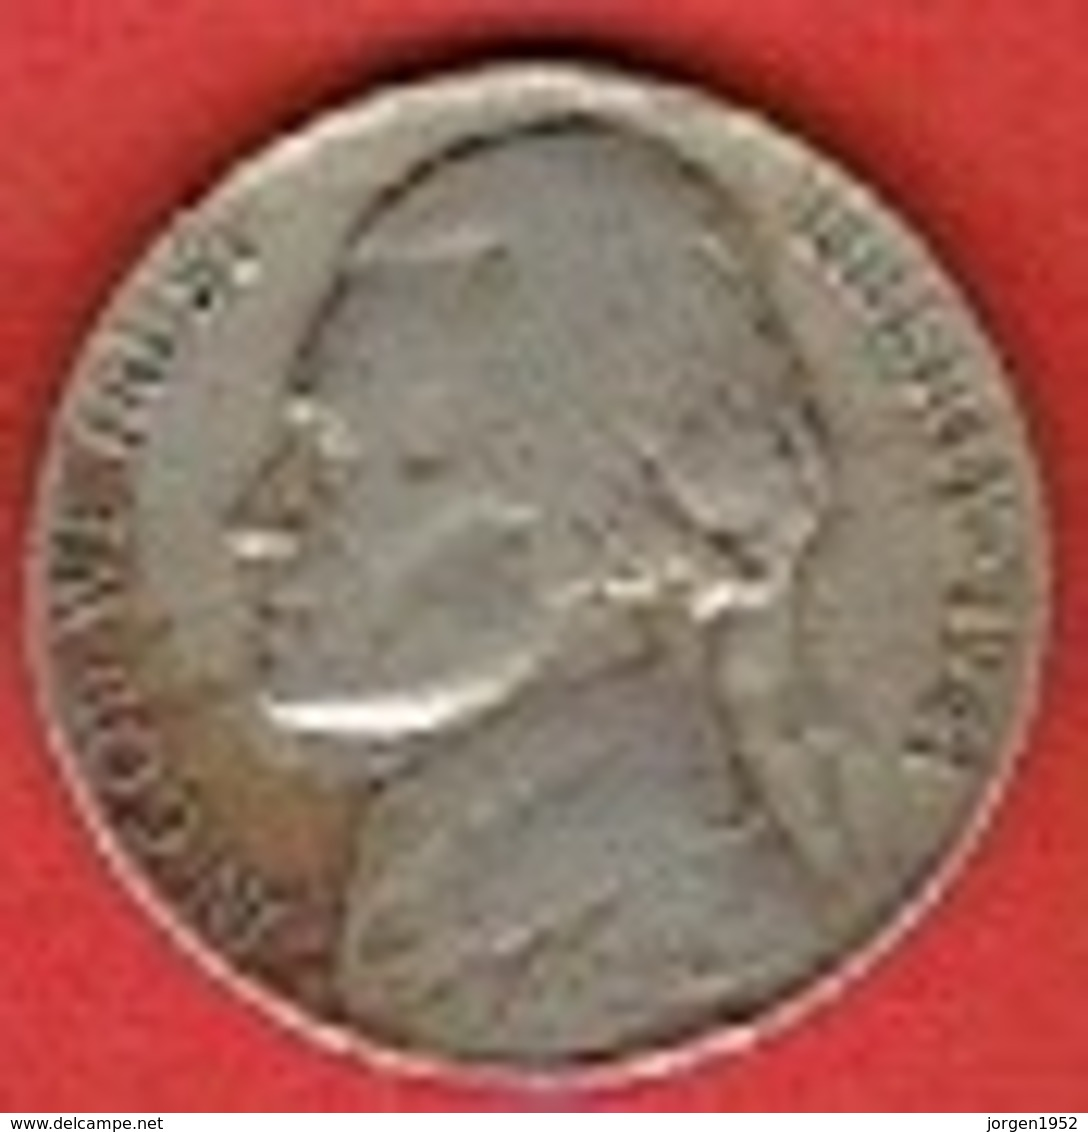 """UNITED STATES  # 5 Cents """"Jefferson Nickel"""" 1st Portrait FROM 1941 - Federal Issues"""